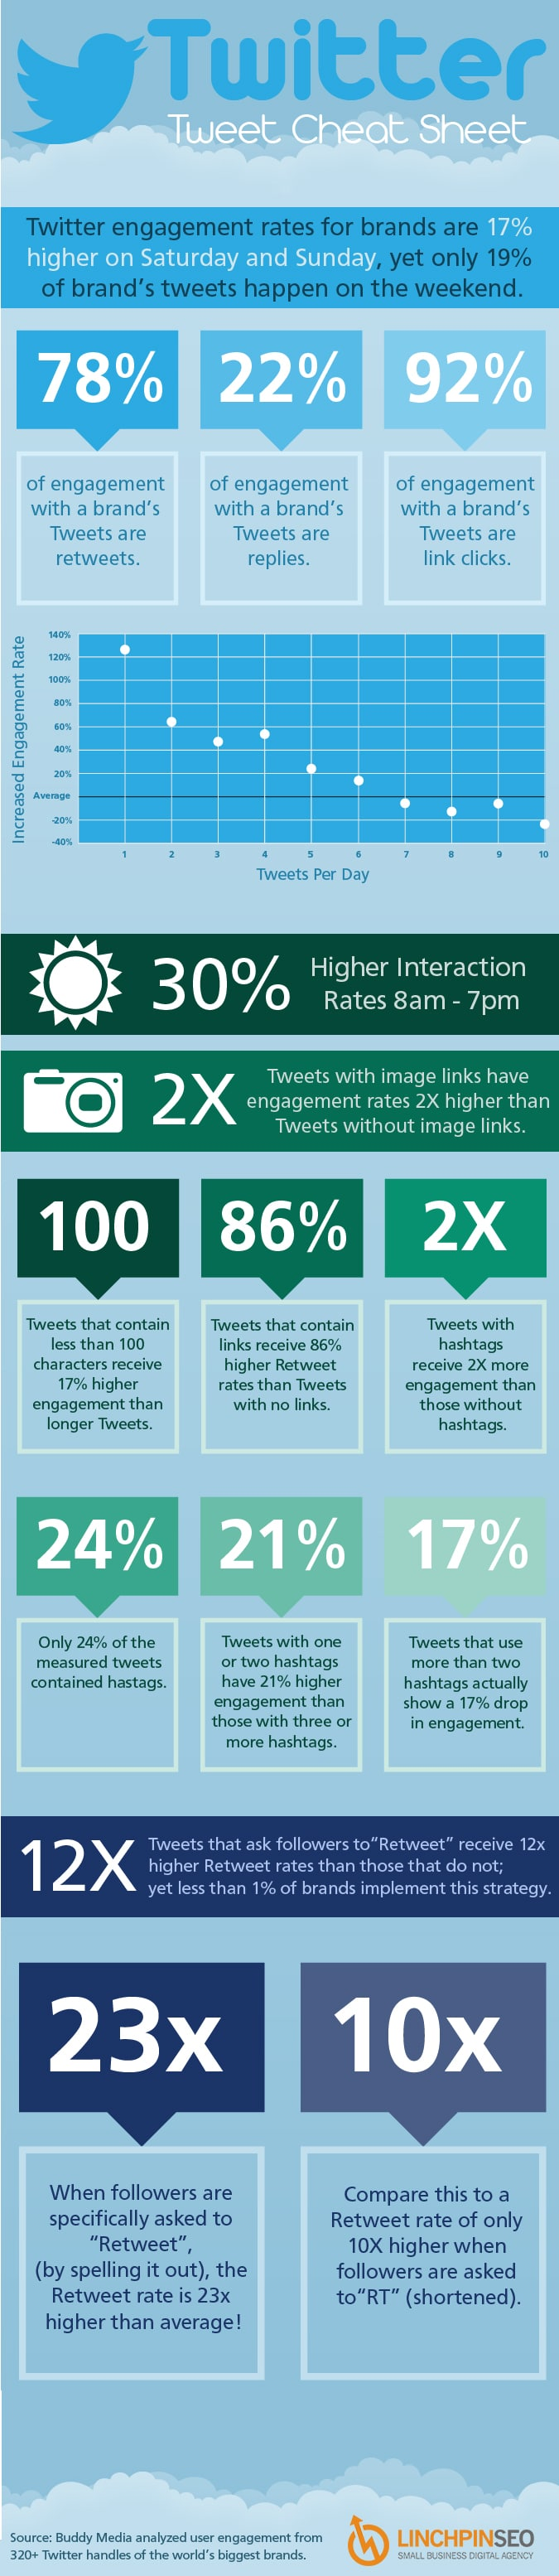 Guide For Increasing Twitter Engagement Rate For Brands [Infographic]